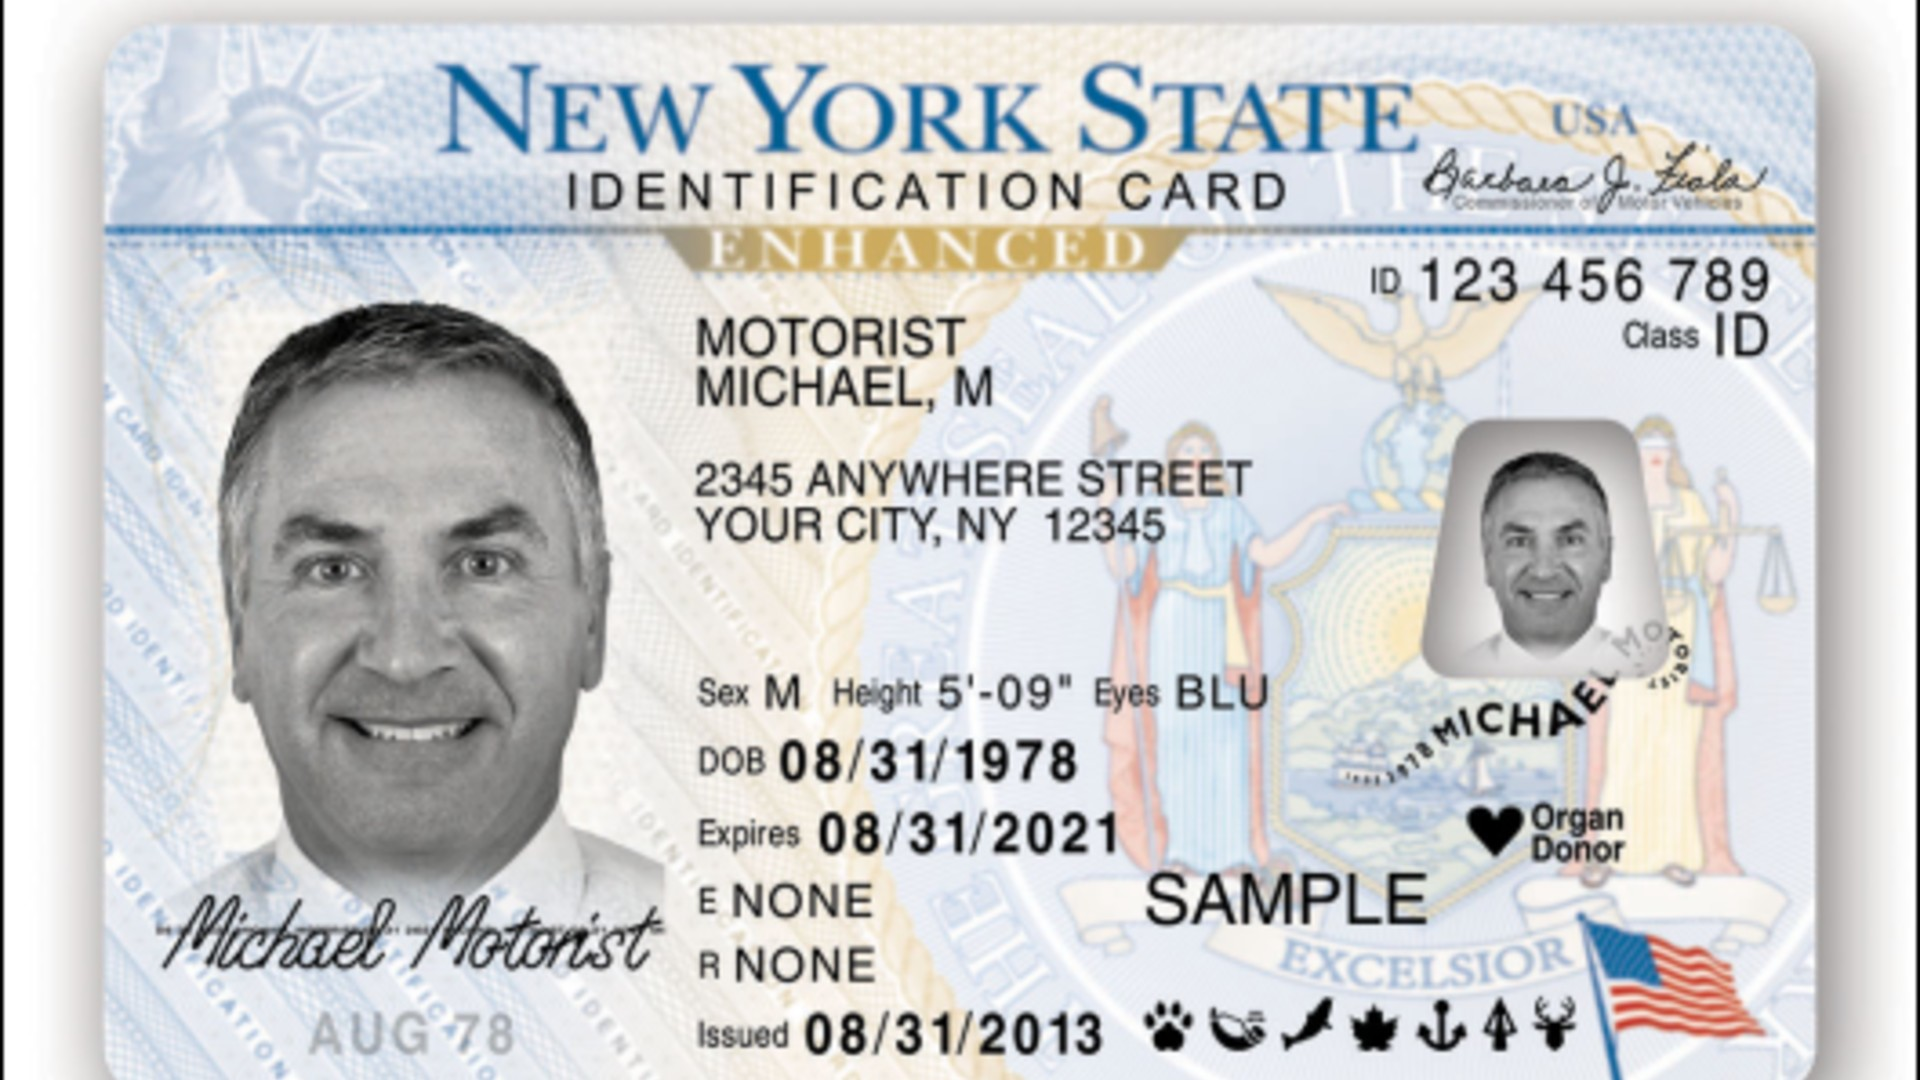 A New York ID card is seen in a photo released by the the state's DMV.